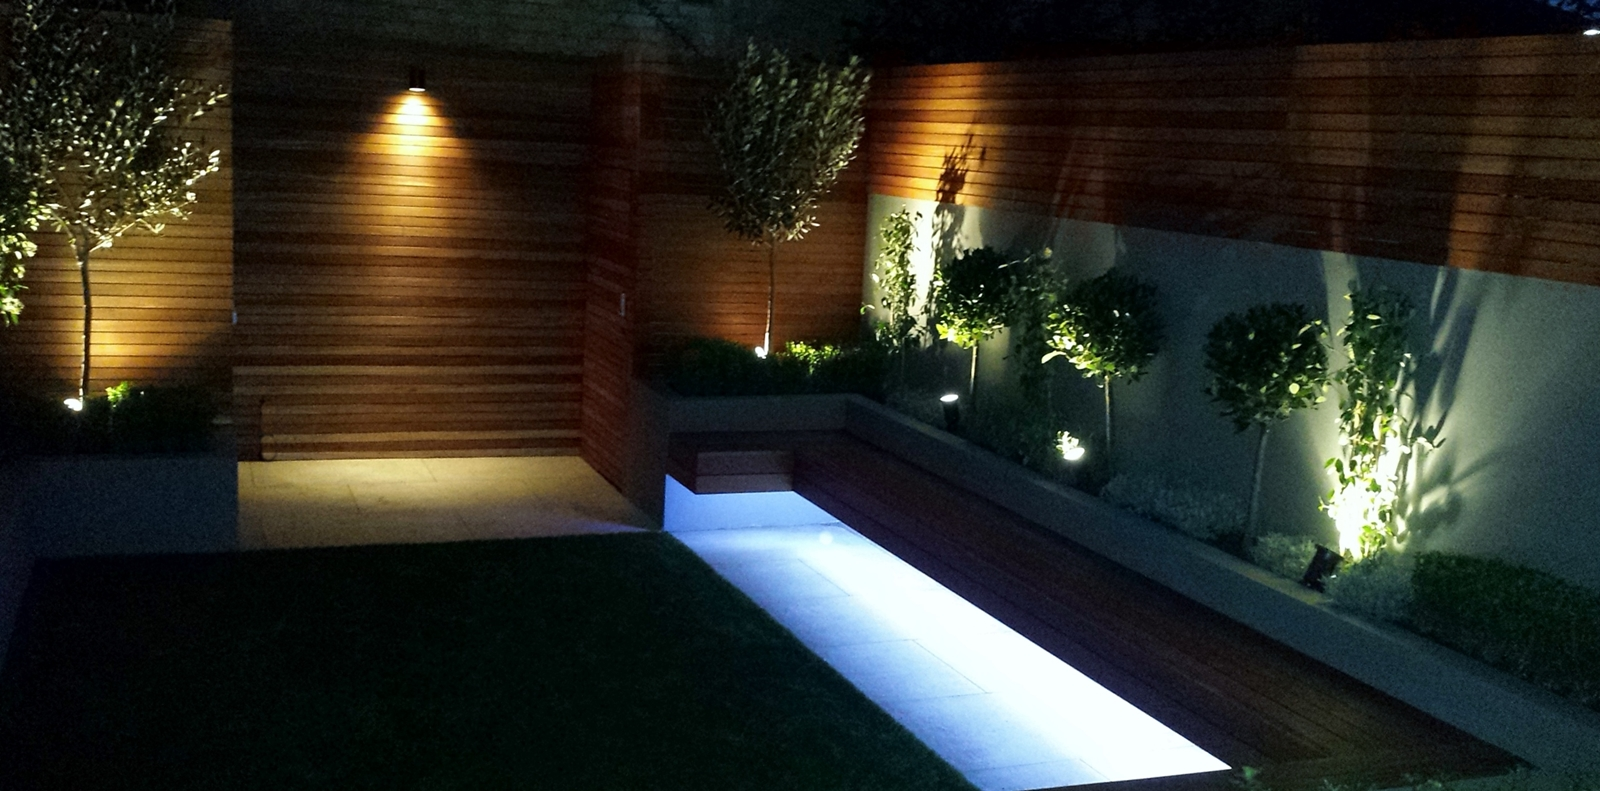 1000 images about ideas para el hogar on pinterest for Garden lighting designs